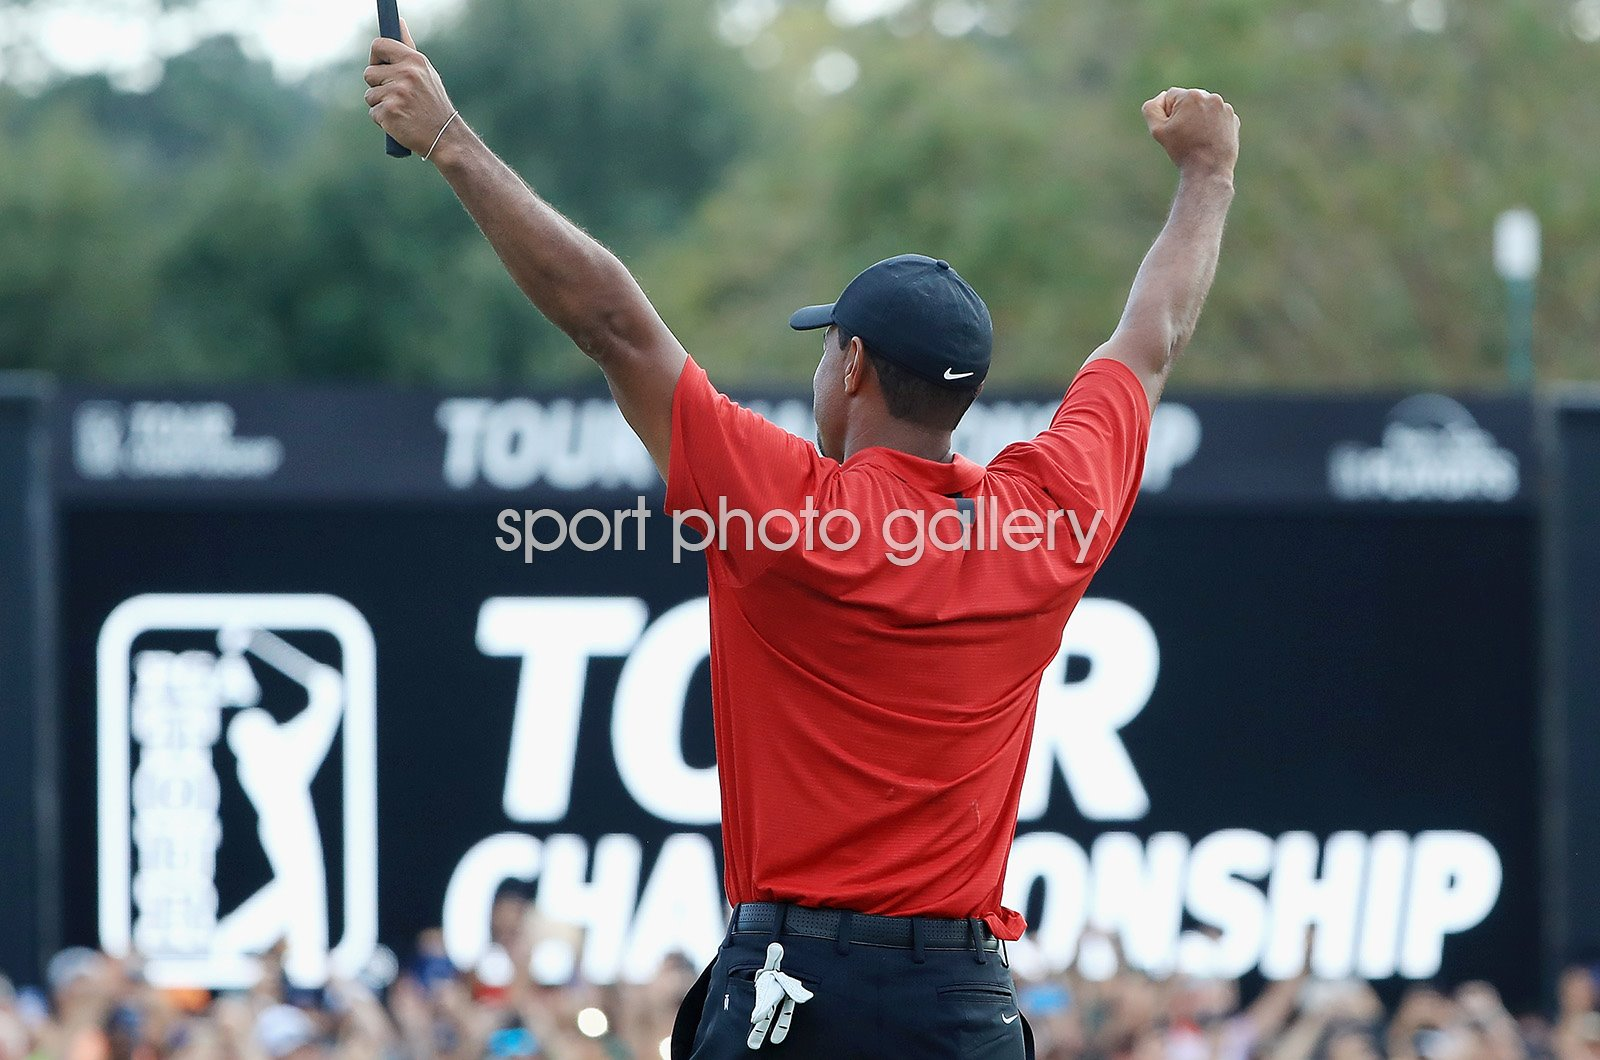 Tiger Woods USA Tour Champion East Lake 2018